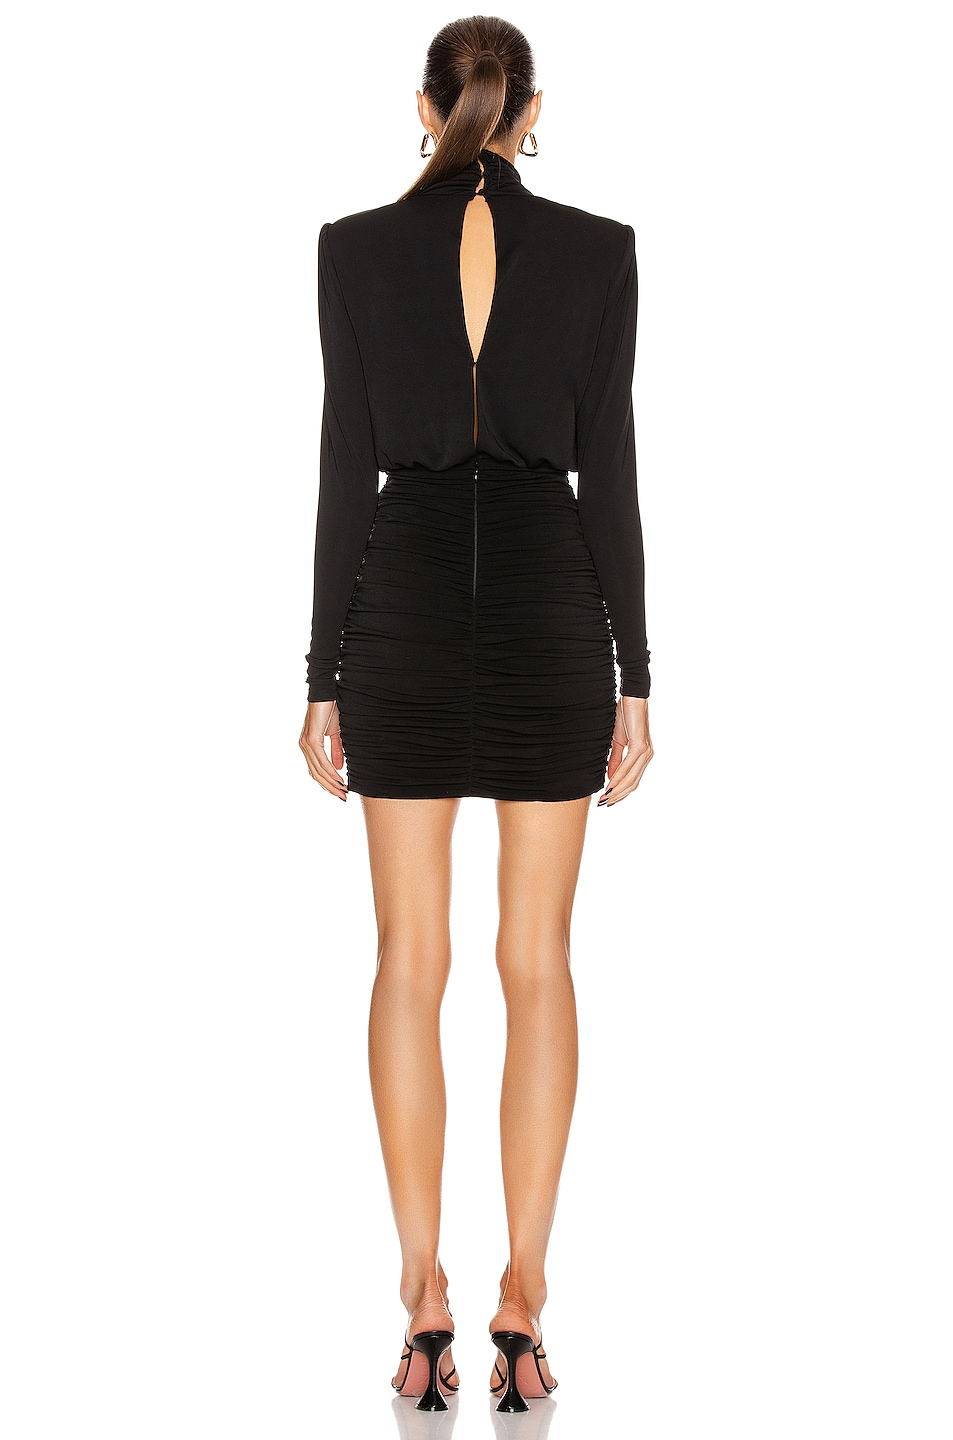 Image 3 of Cinq a Sept Isla Dress in Black